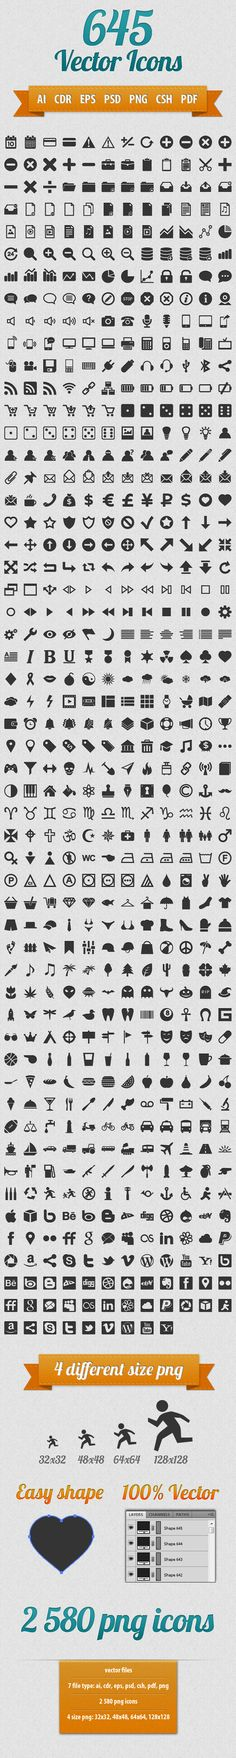 645 #Vector #Icons Pack. #UI #Webdesign